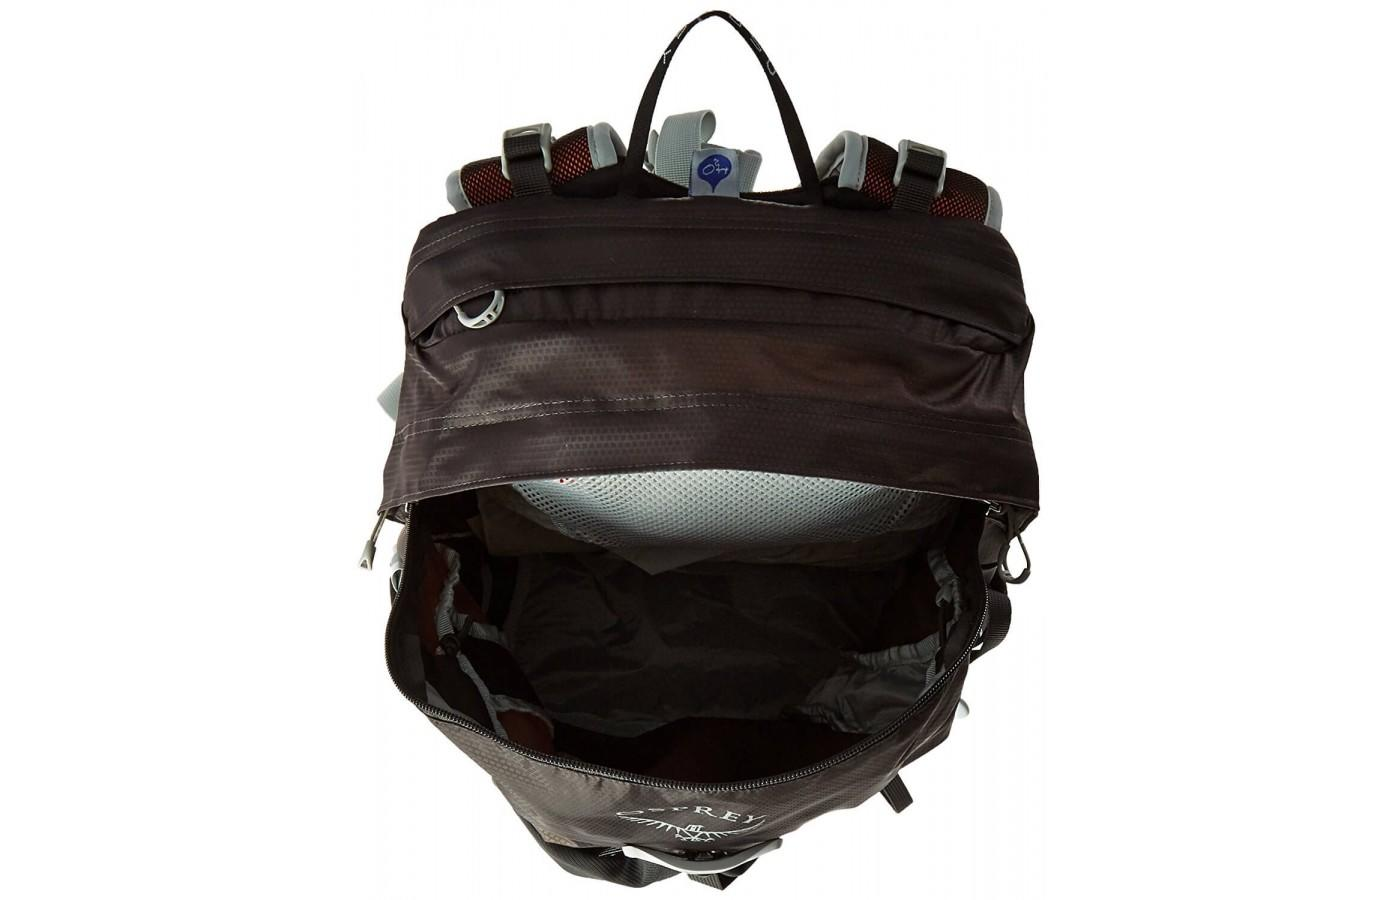 The Osprey Talon 22 has a separate hydration sleeve